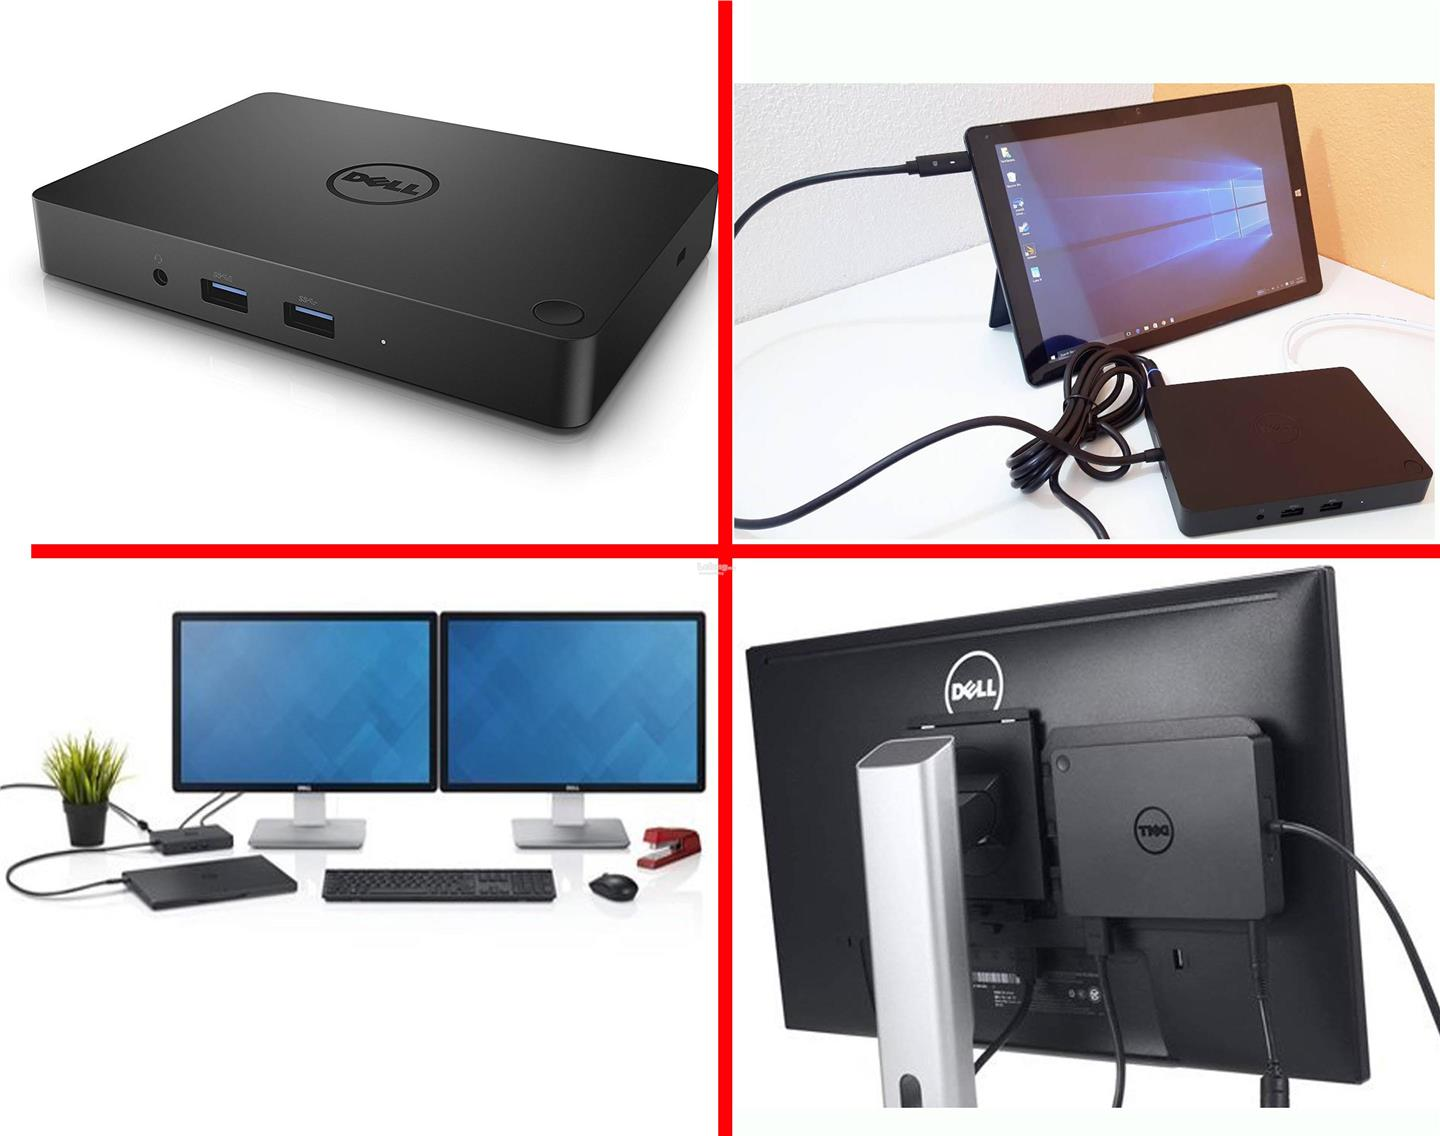 Dell Wd15 Docking Station 3 Monitors Anti Feixista